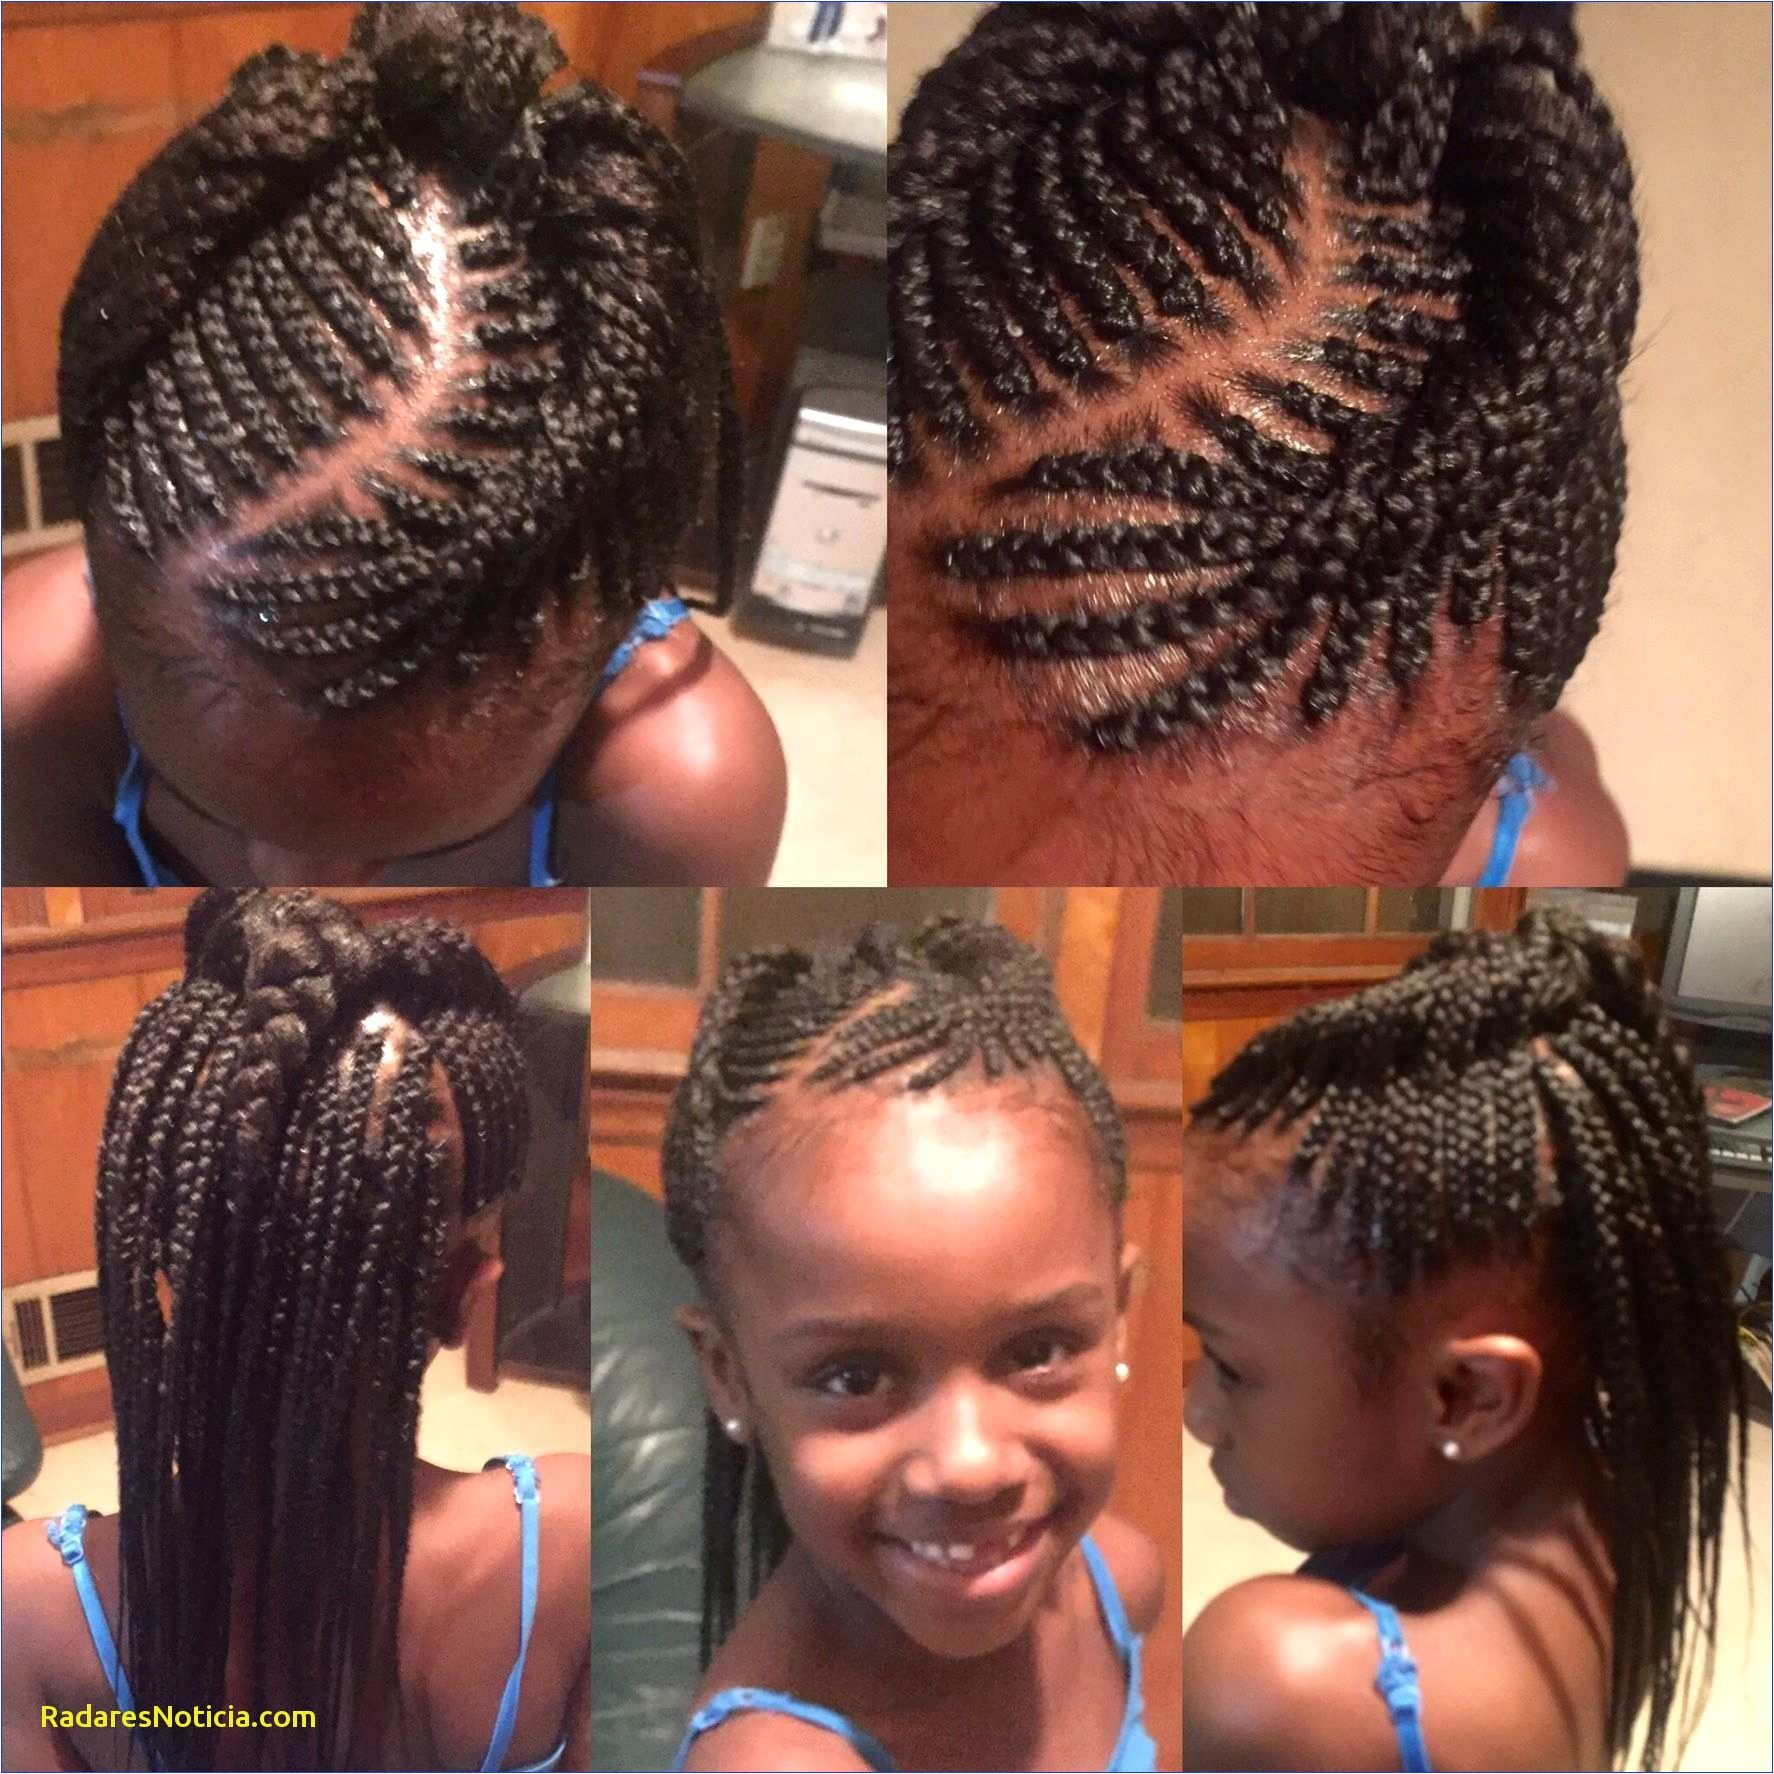 Lil Girl Braided Hairstyles with Beads Kids Braids Styles with Beads Kids Braided Hairstyles with Beads